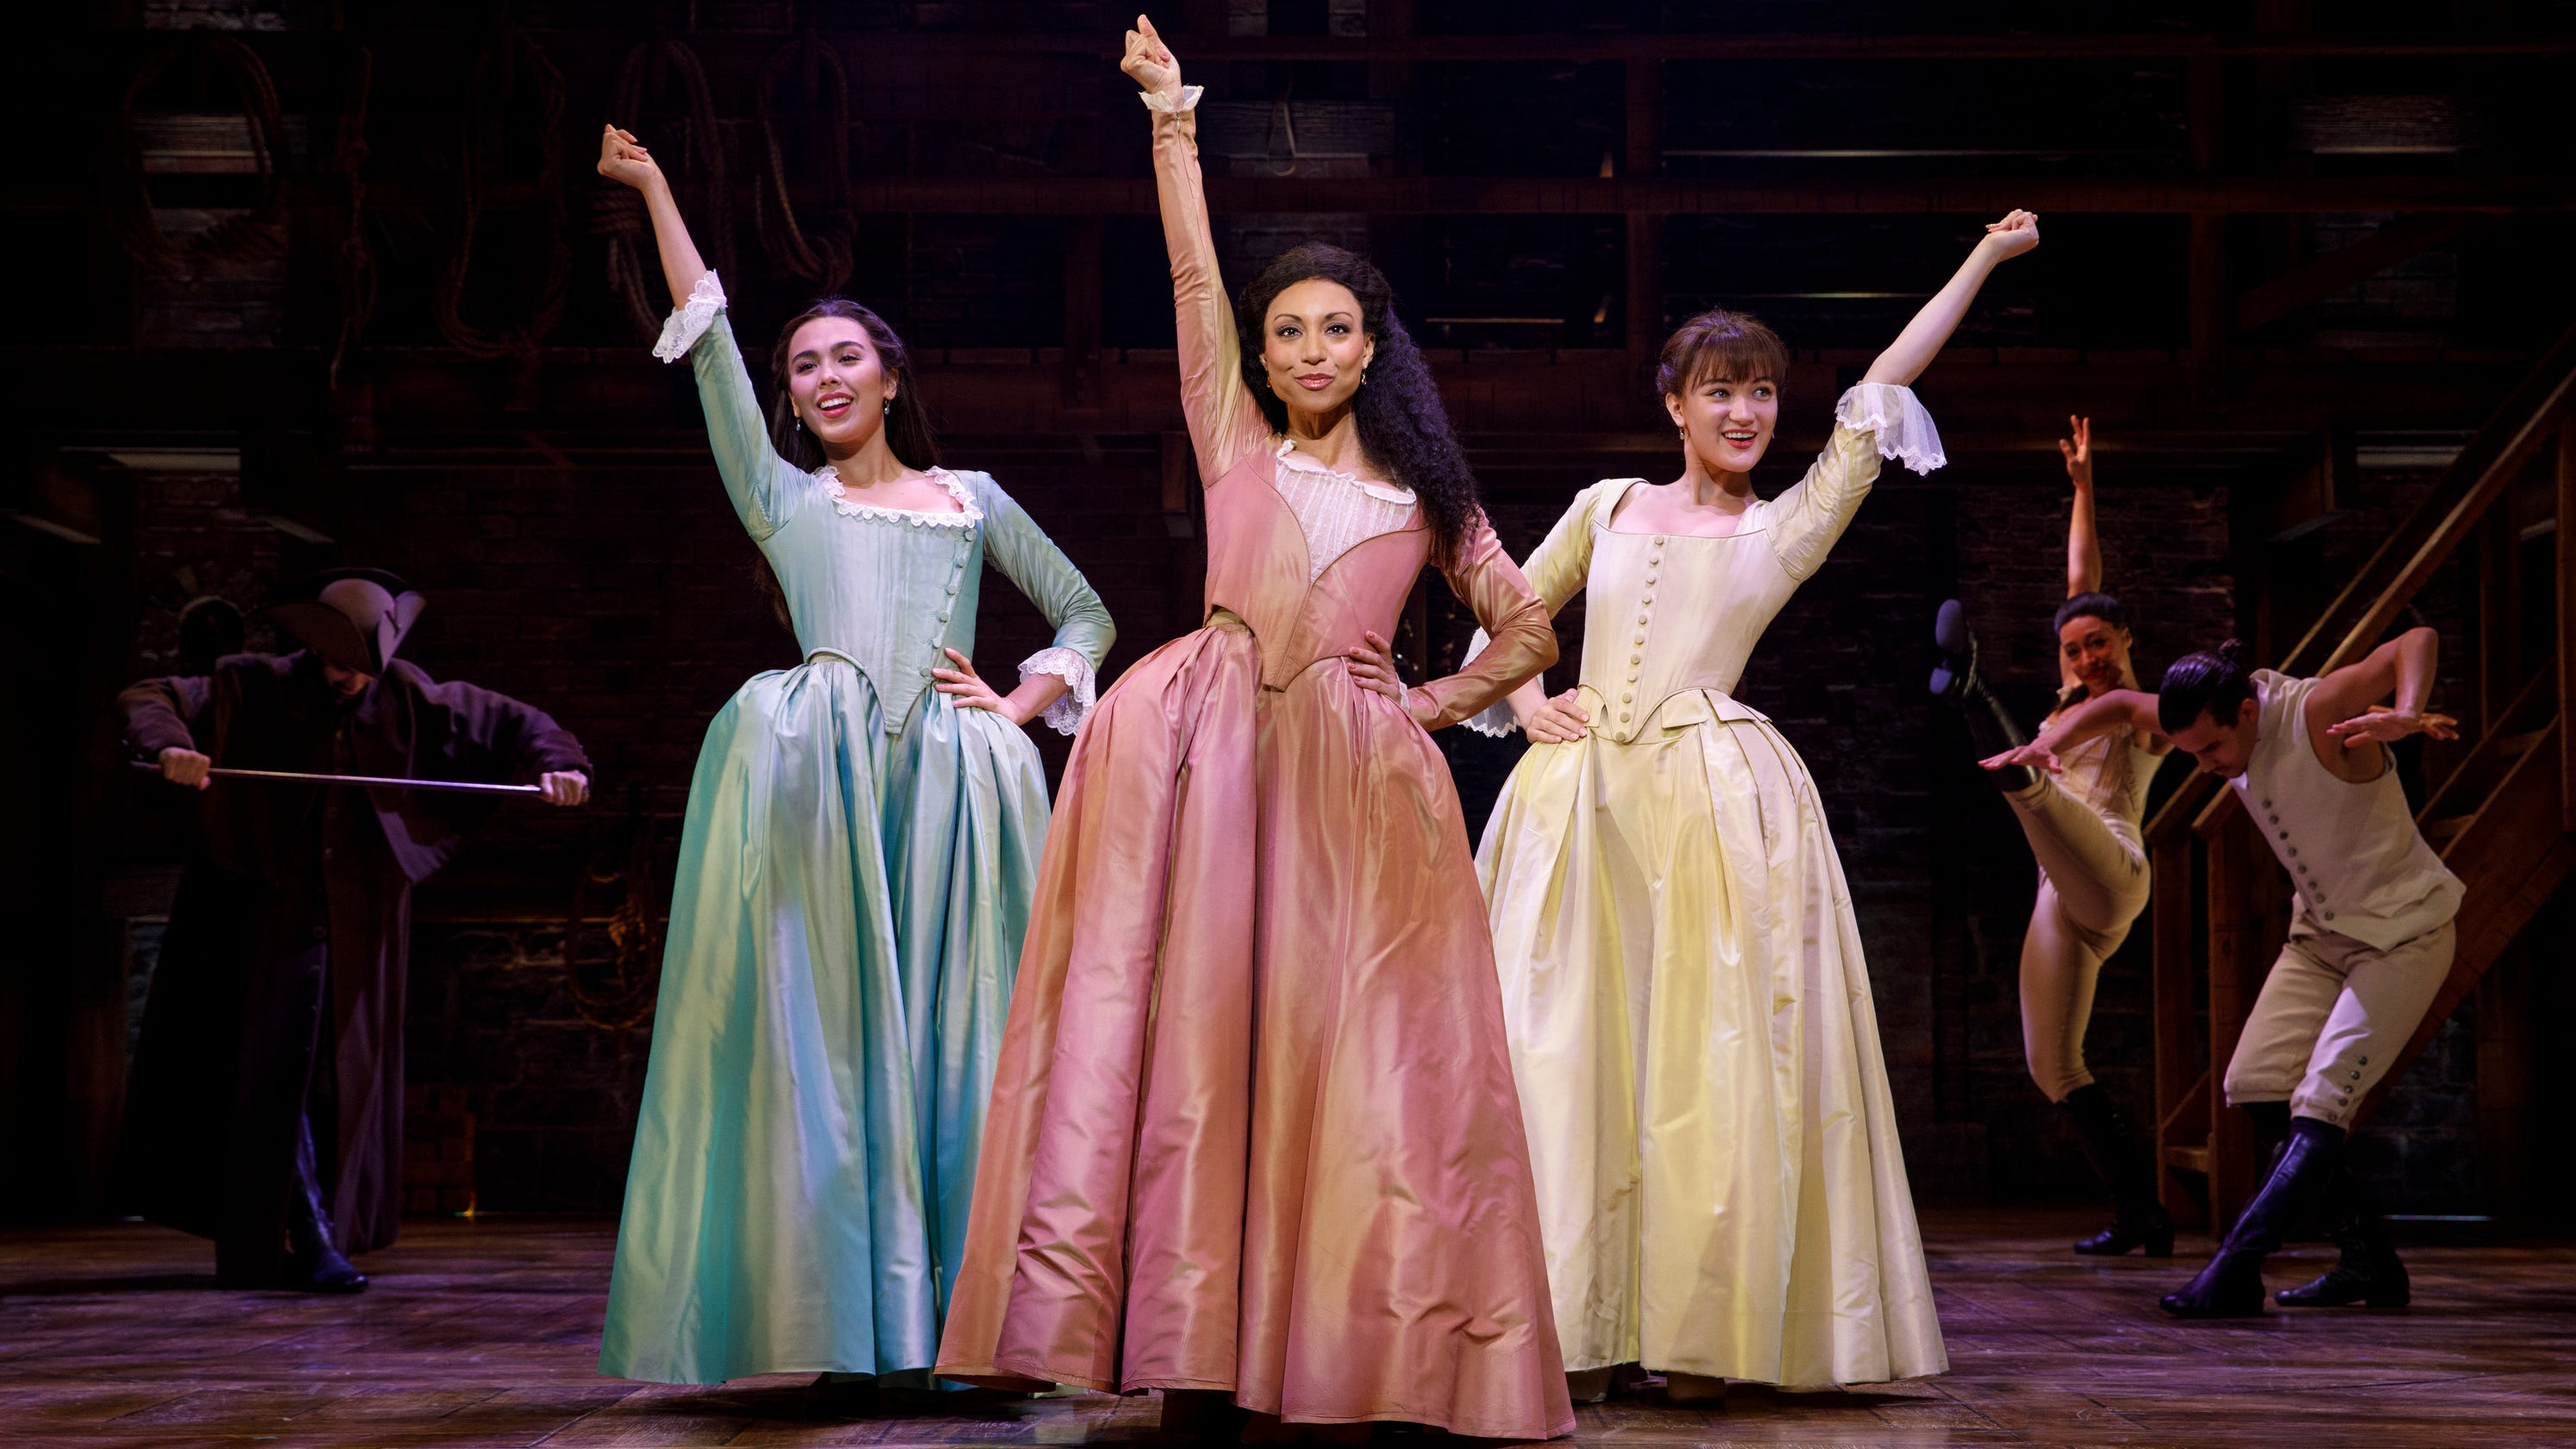 10 things you (likely) didn't know about 'Hamilton'